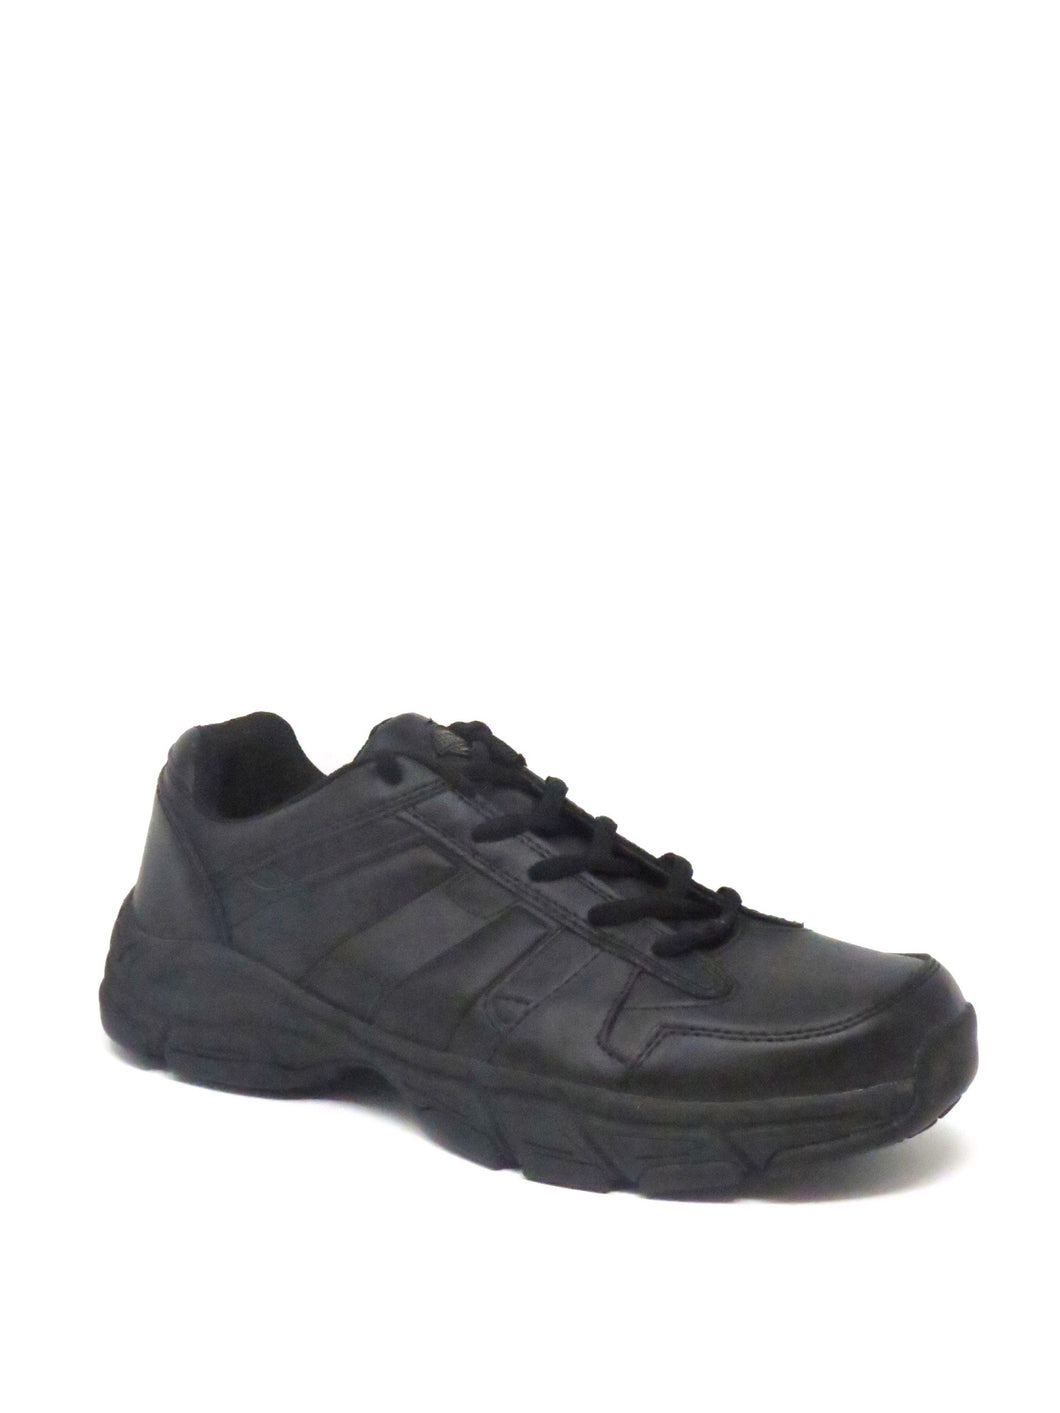 Dickies | SR4515M | Slip Resistant Shoe | Black